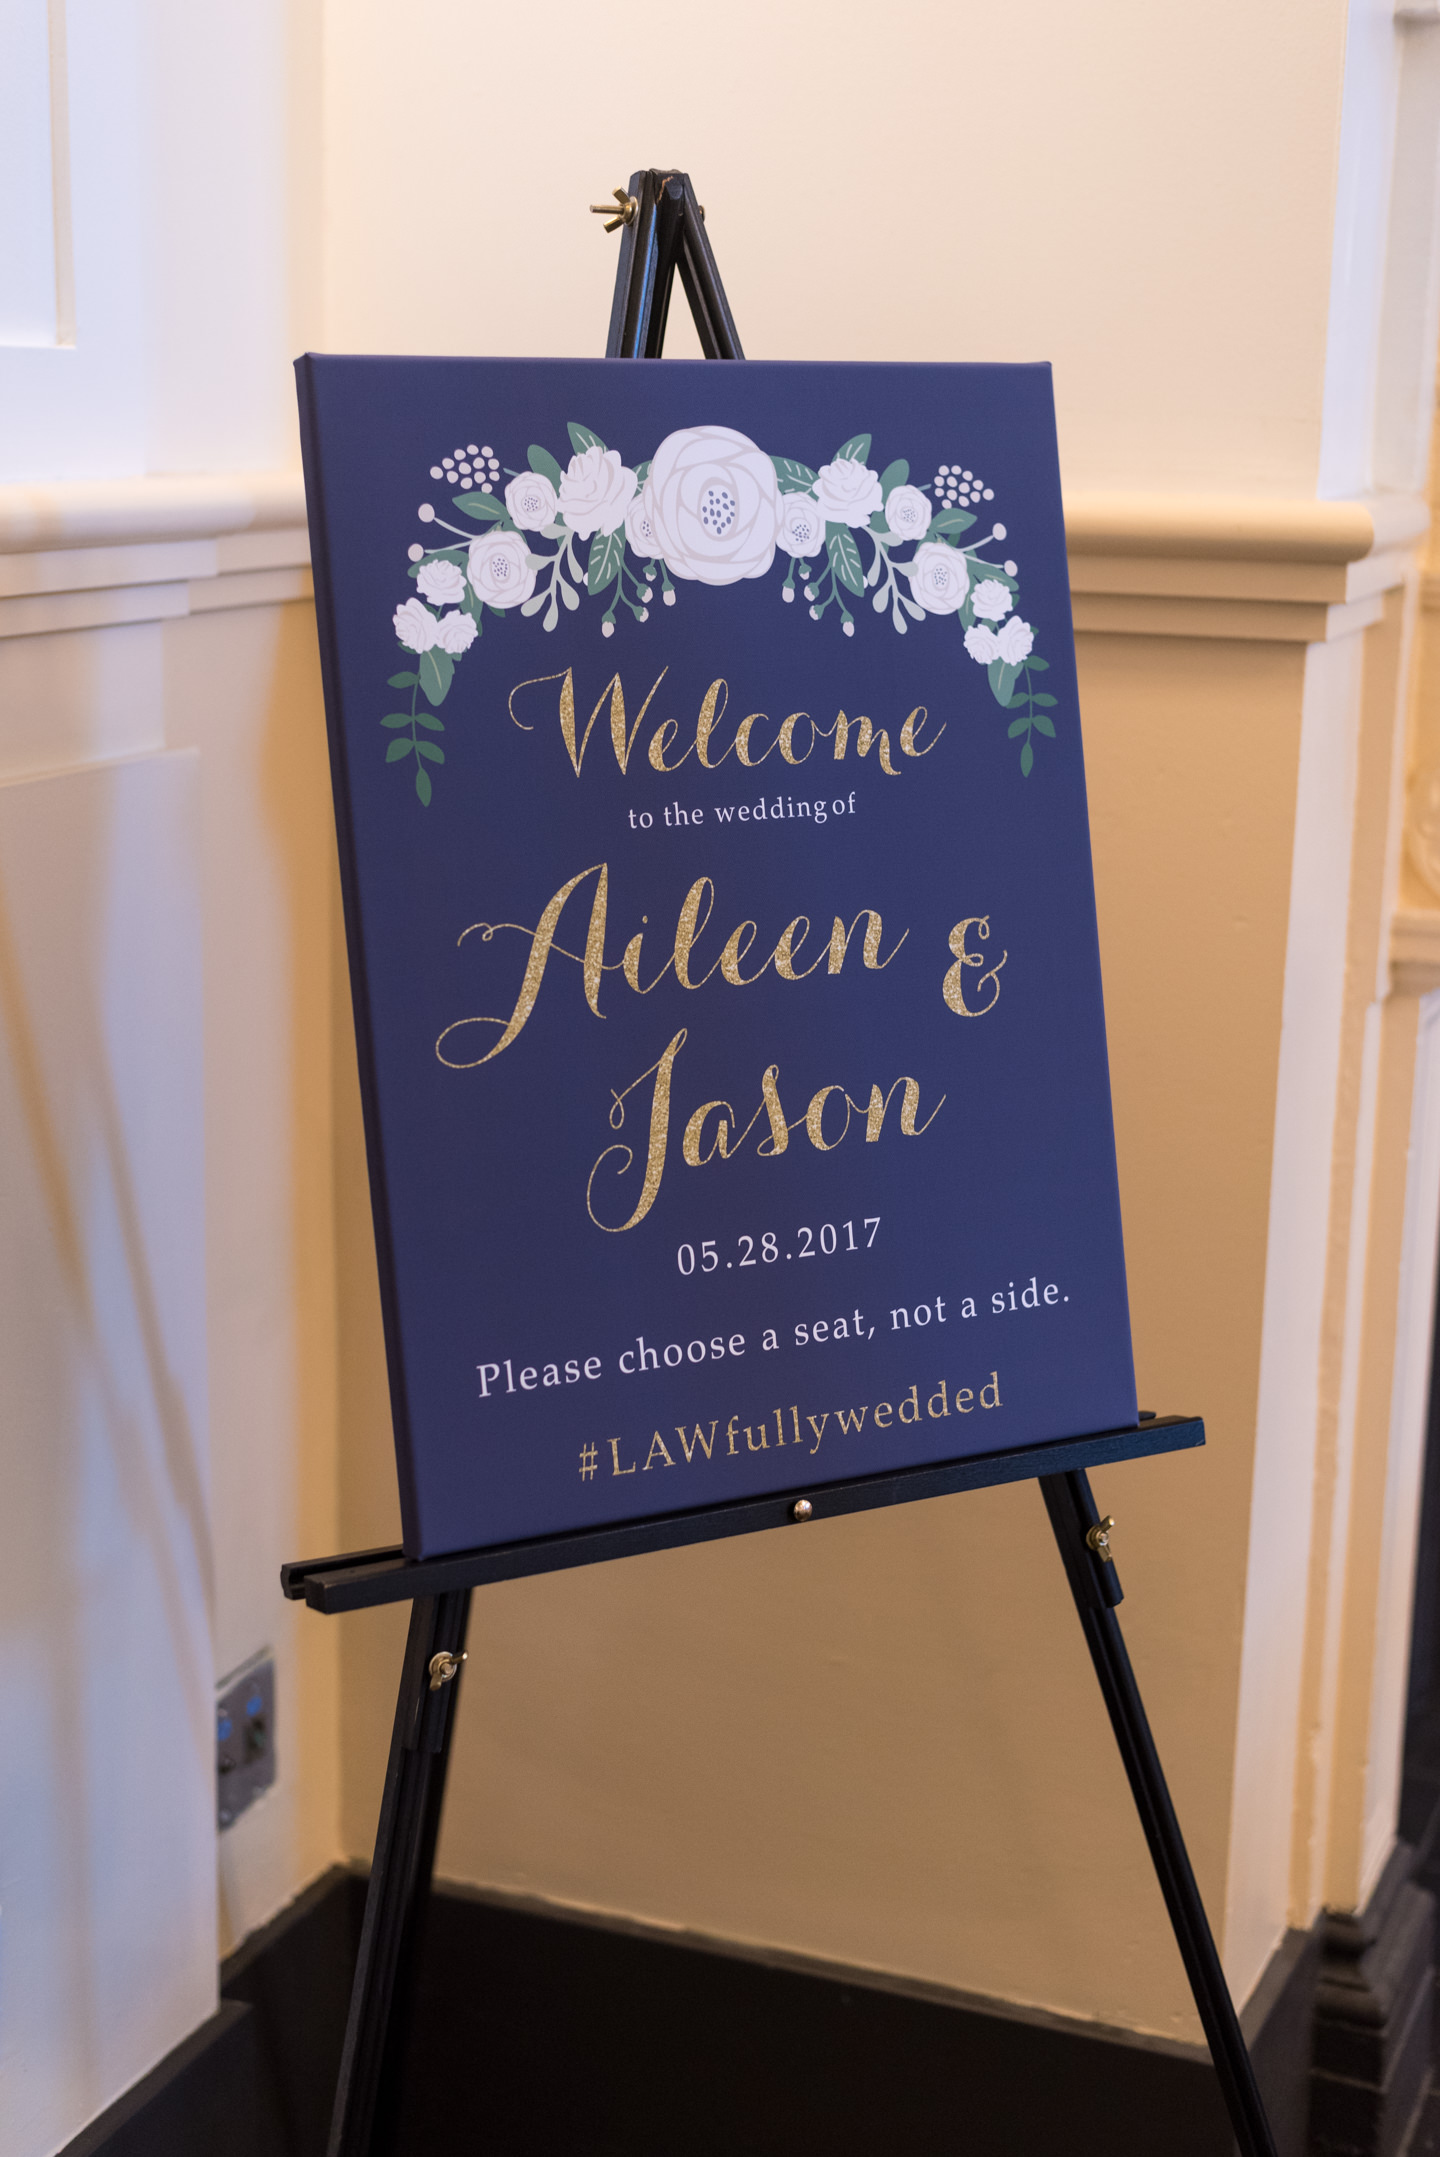 20170528_Tat_Aileen and Jason Wedding-44.jpg